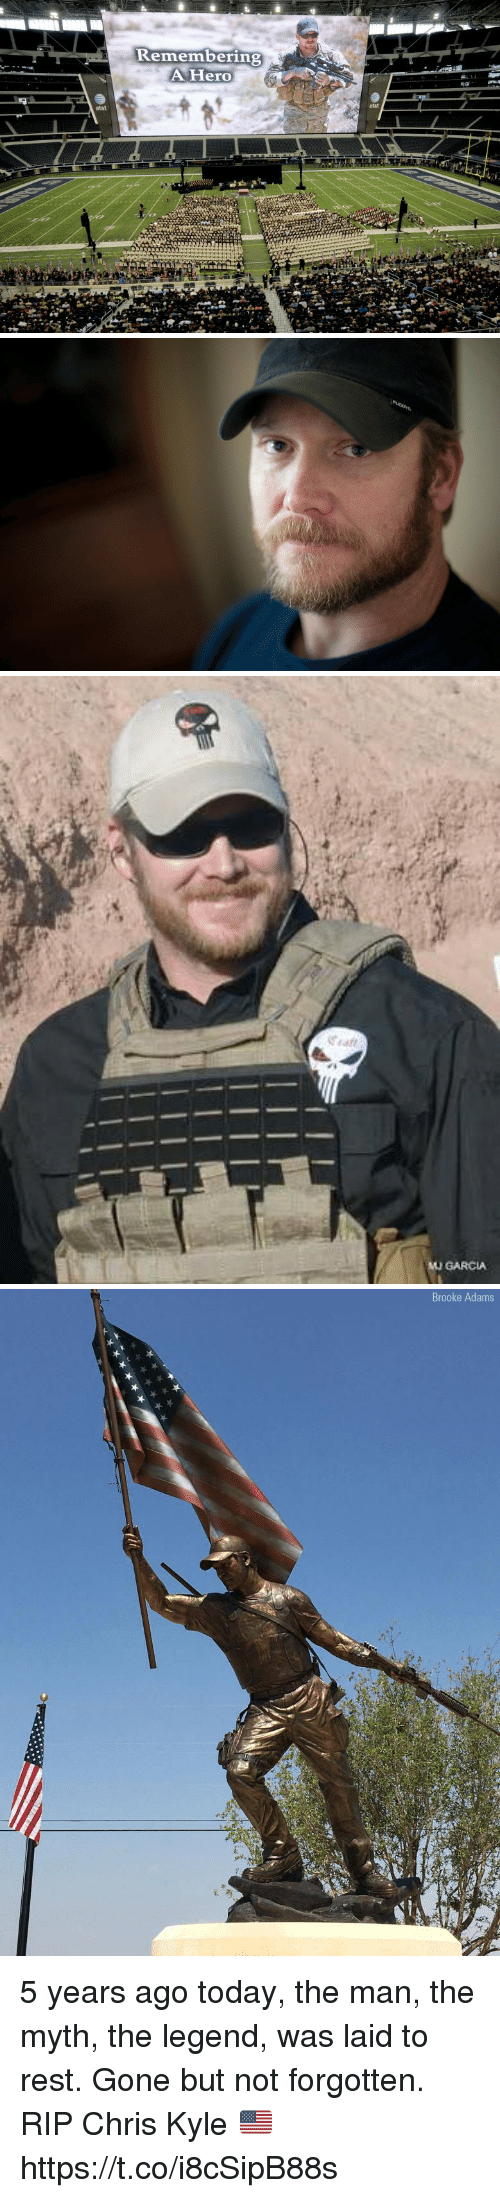 Memes, Today, and Atat: Kemembering  AHero  atat  atst   MU GARCIA   Brooke Adams 5 years ago today, the man, the myth, the legend, was laid to rest. Gone but not forgotten. RIP Chris Kyle 🇺🇸 https://t.co/i8cSipB88s